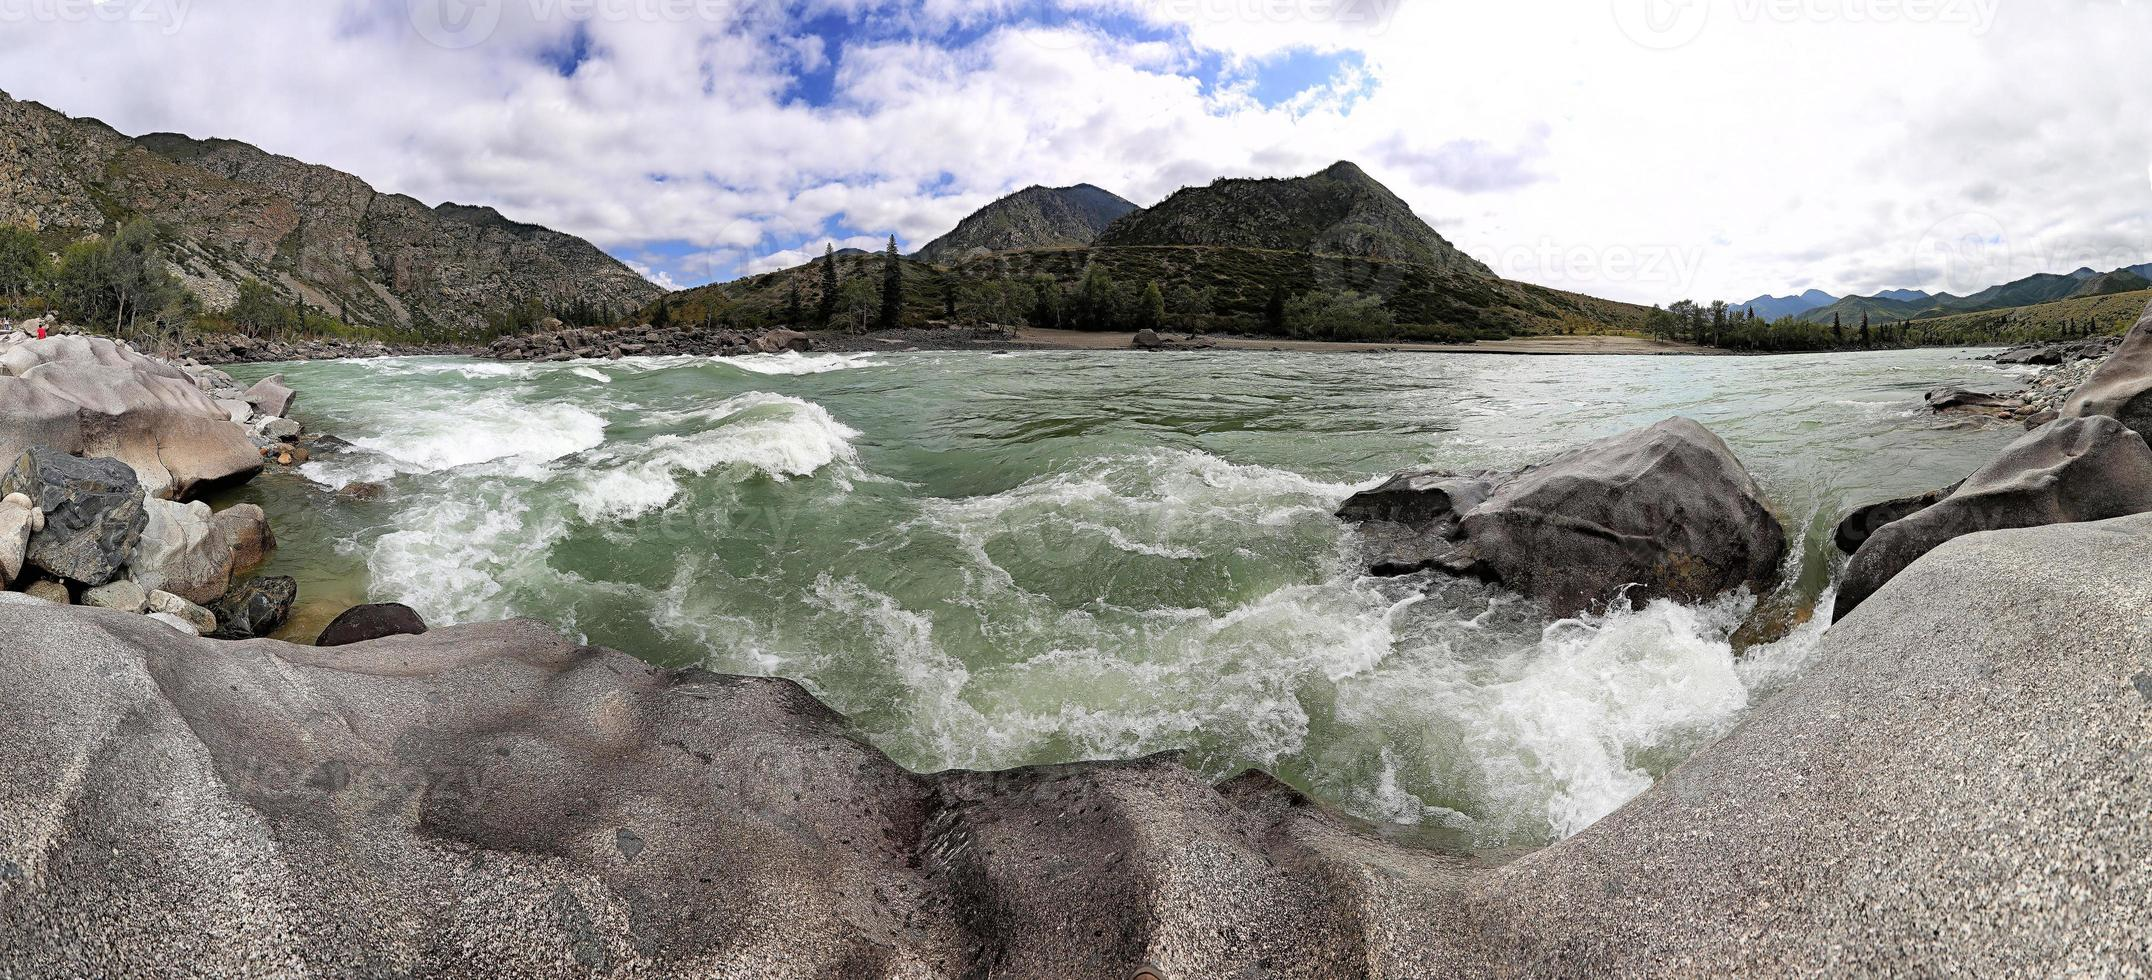 mountain and the beautiful shore of a mountain river. photo